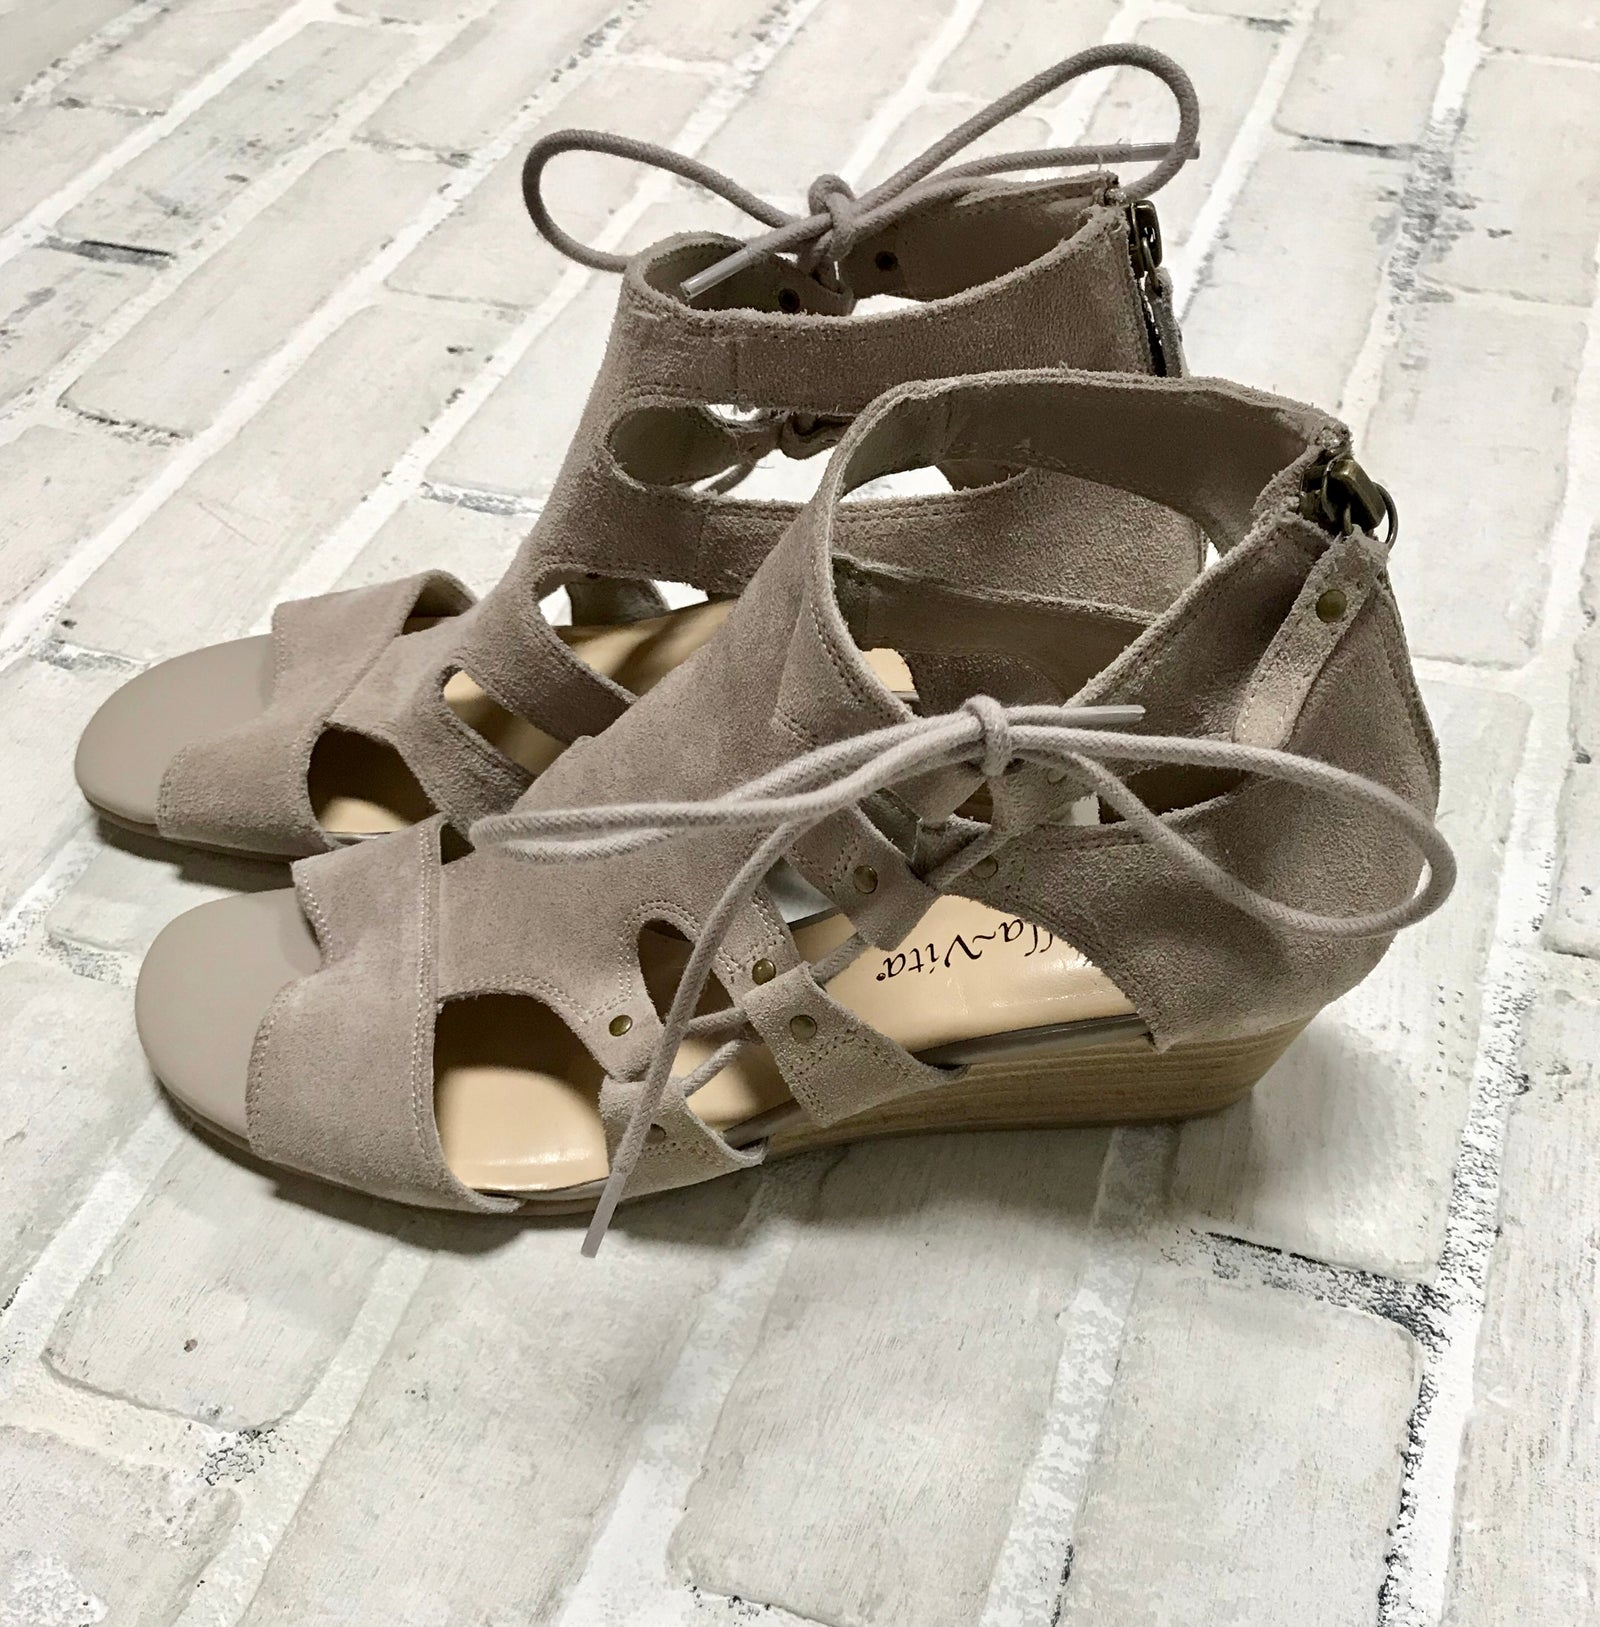 Bella Vita Shoes (8.5W)